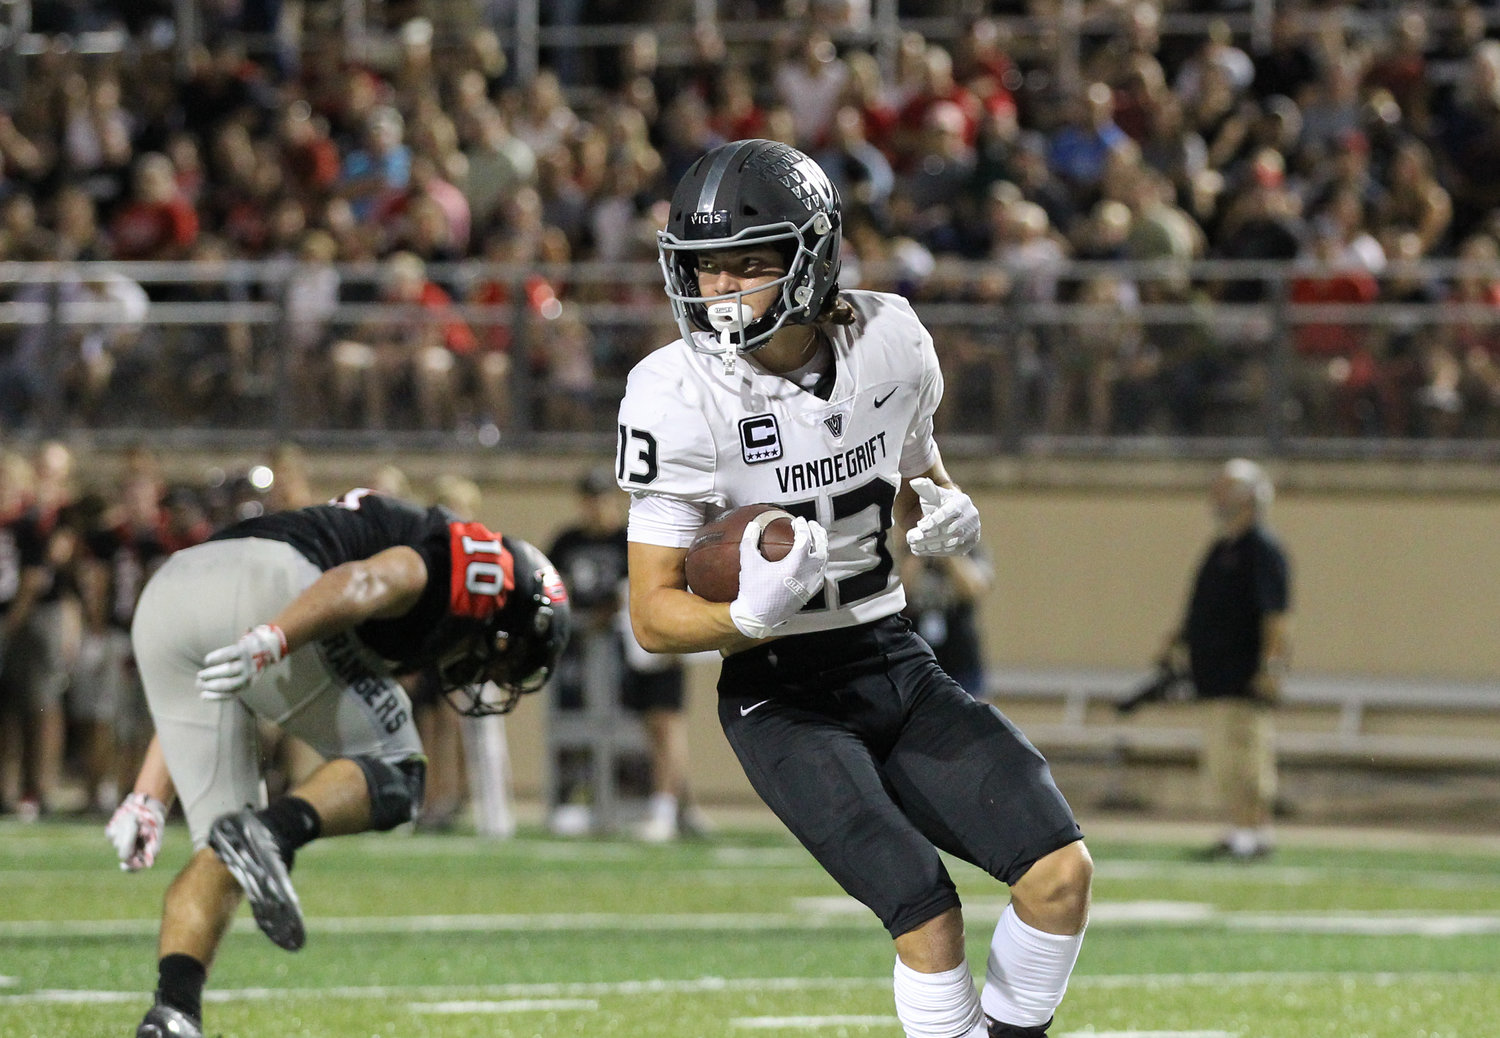 Vandegrift Vipers senior wide receiver Trey Mongauzy (13) scores on a touchdown catch during a high school football game between Vista Ridge and Vandegrift at Gupton Stadium in Cedar Park, Texas, on Sept. 27, 2019.